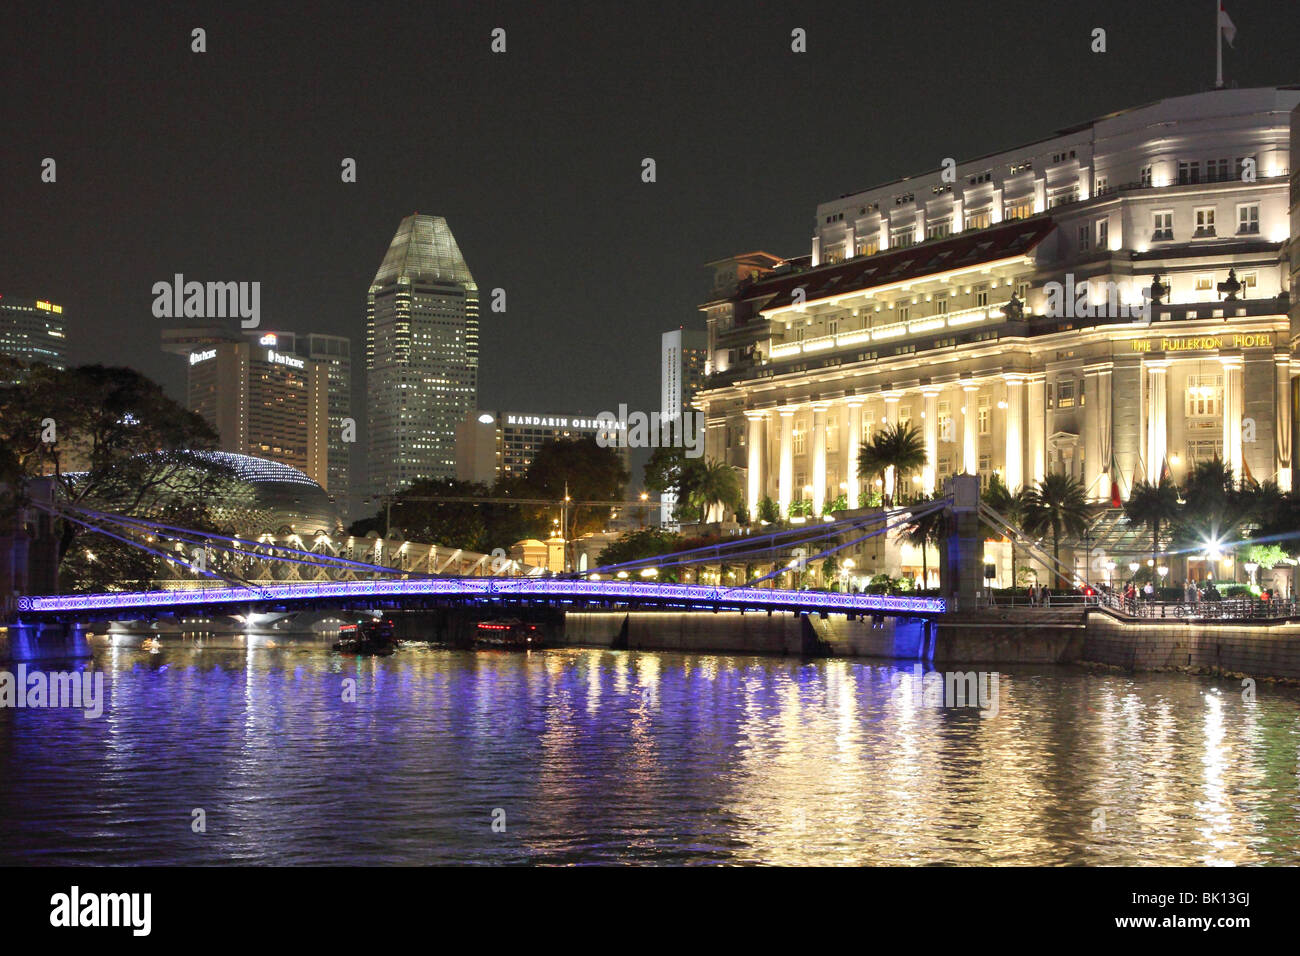 Night picture of the Fullerton Hotel with the Cavenagh bridge in the foreground, and Marina Quay in the background. - Stock Image